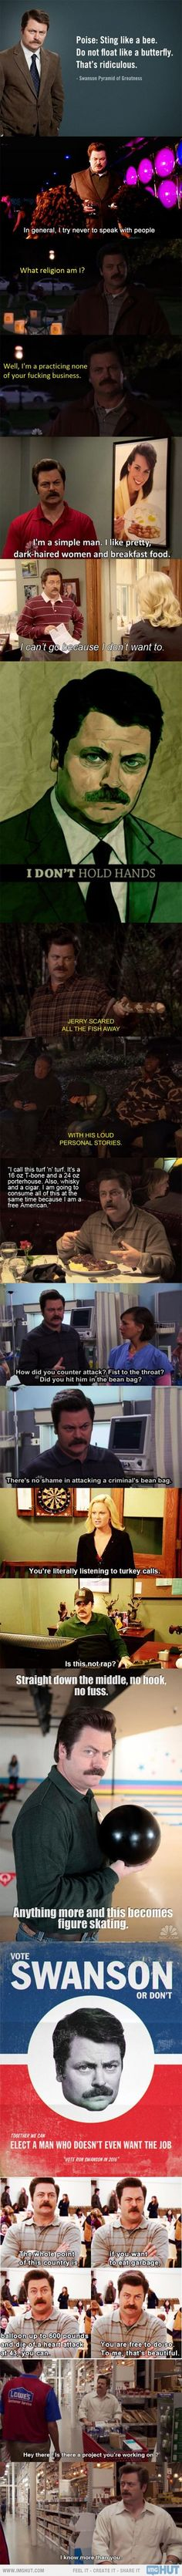 I don't watch parks and rec much, but when I do, my favorite parts always seem to involve him. haha